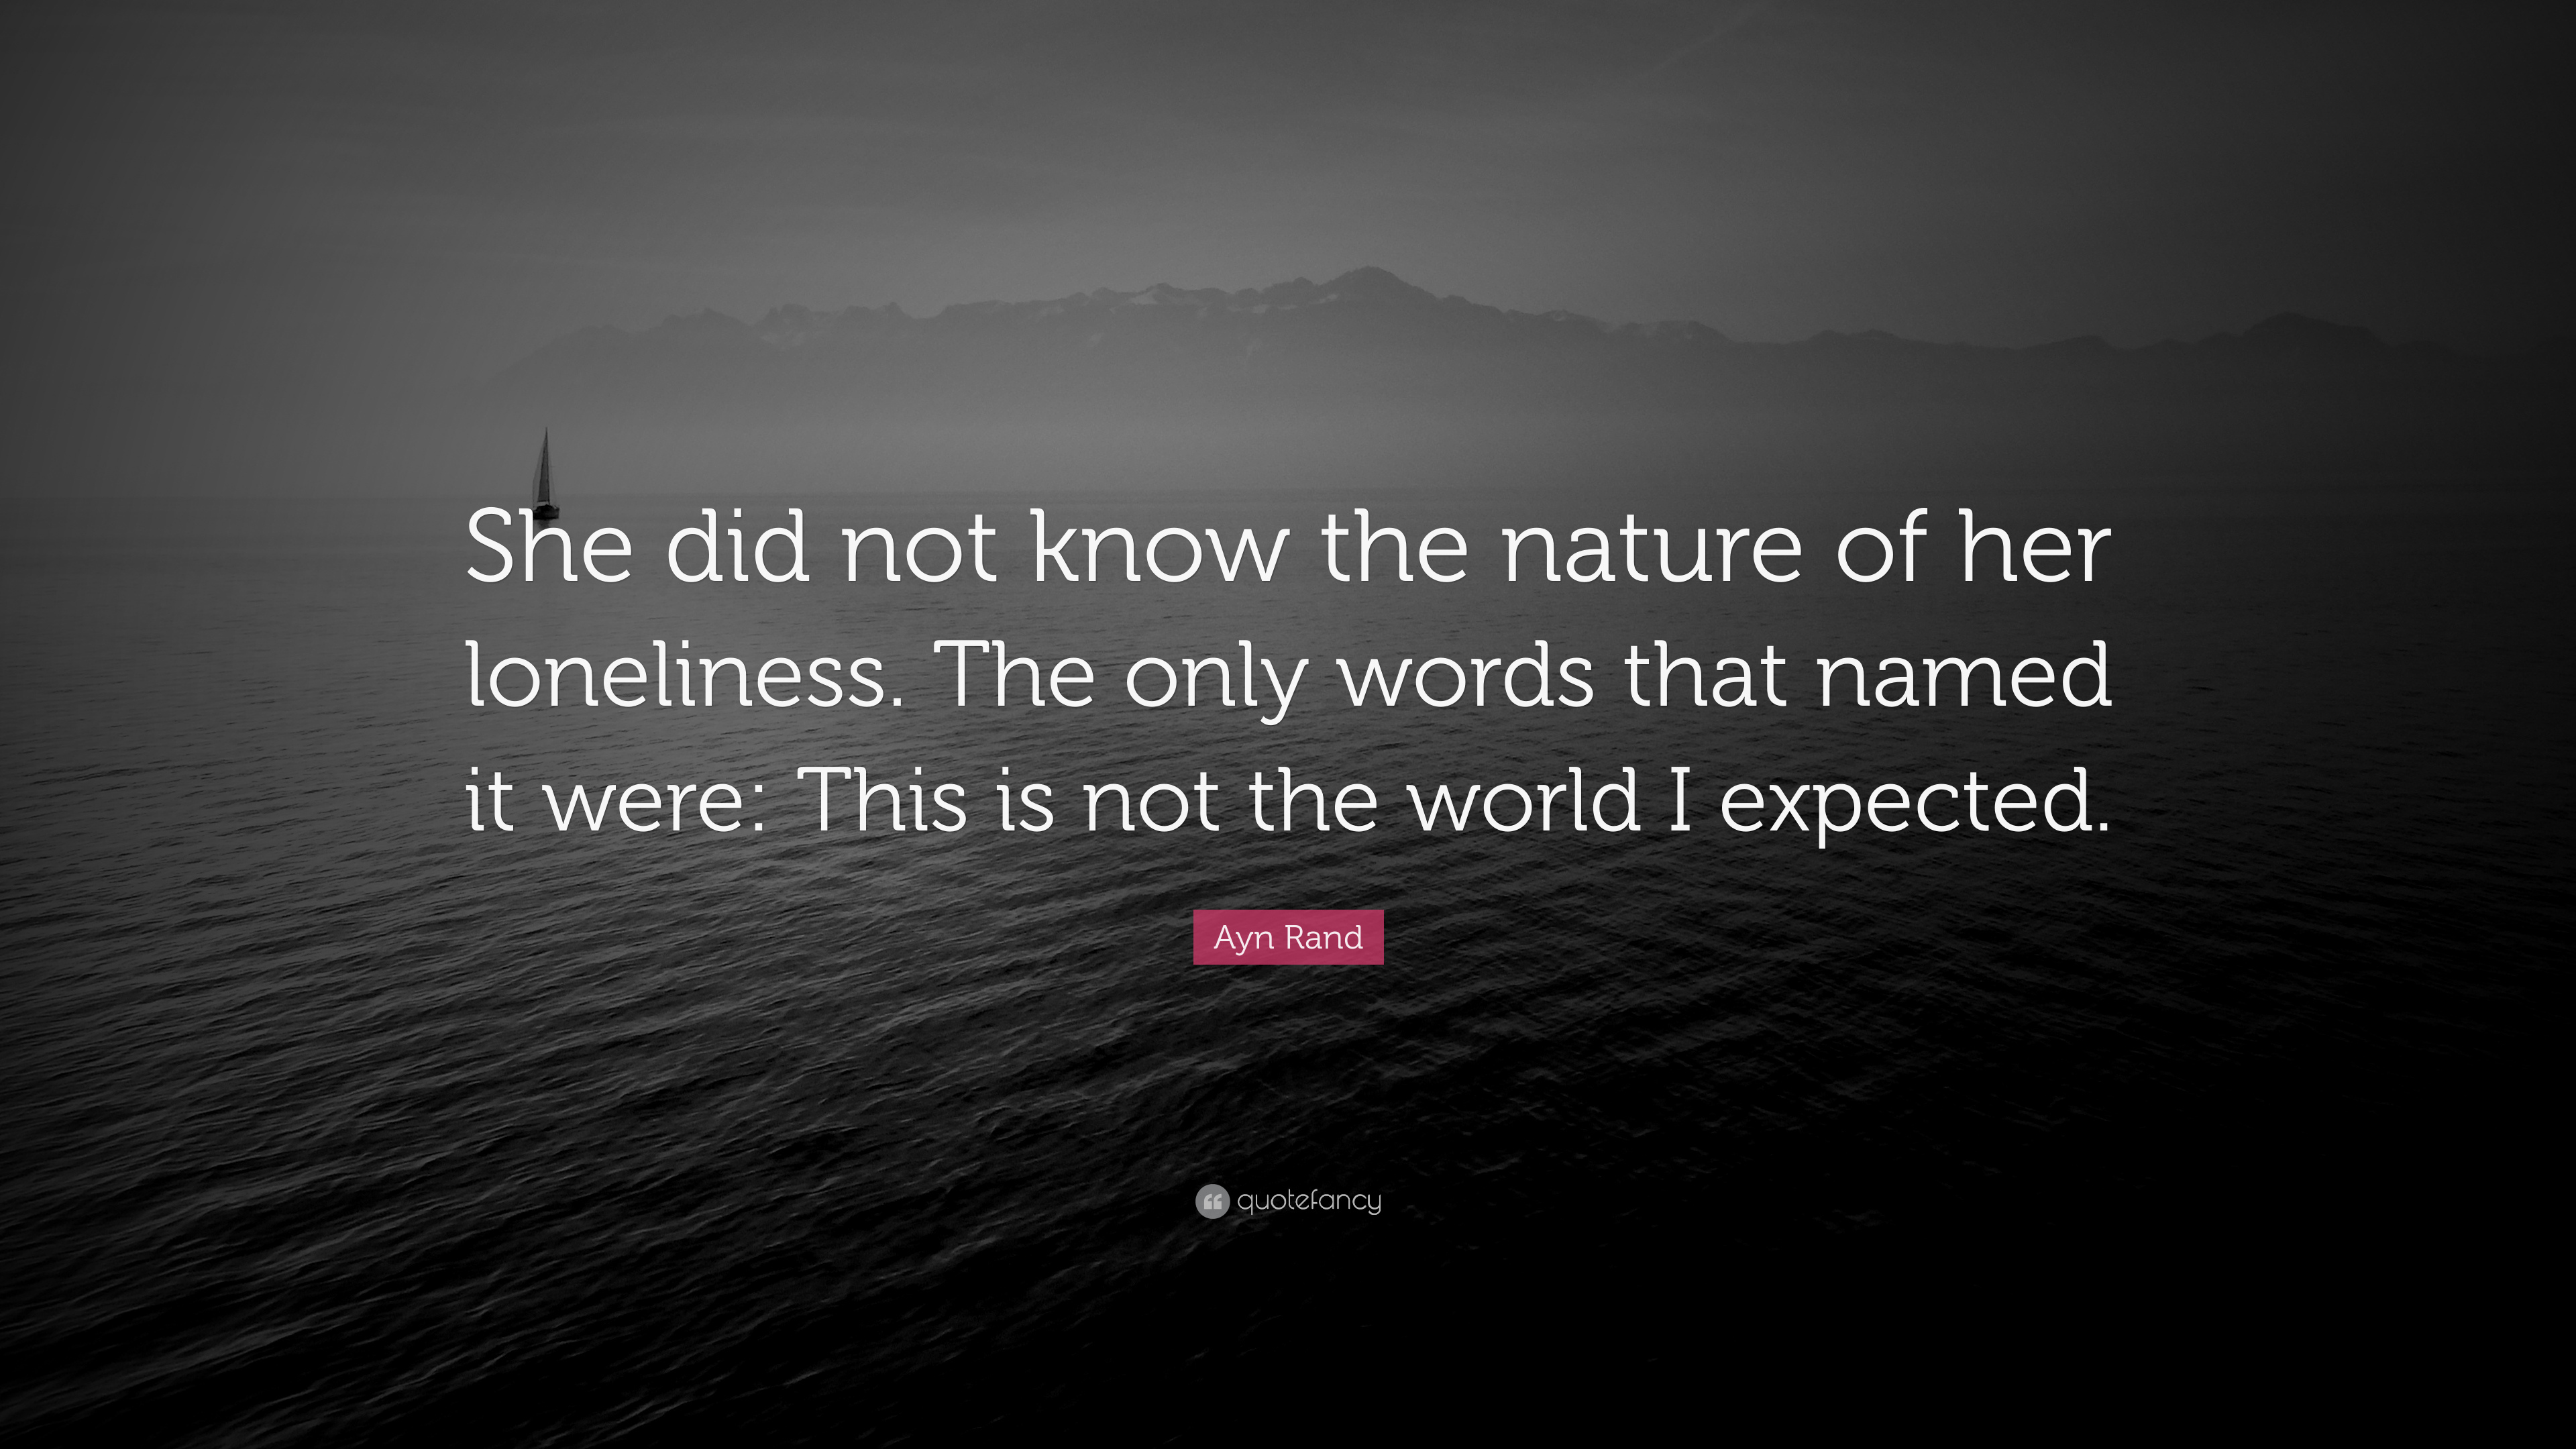 """ayn rand quote """"she did not know the nature of her loneliness"""